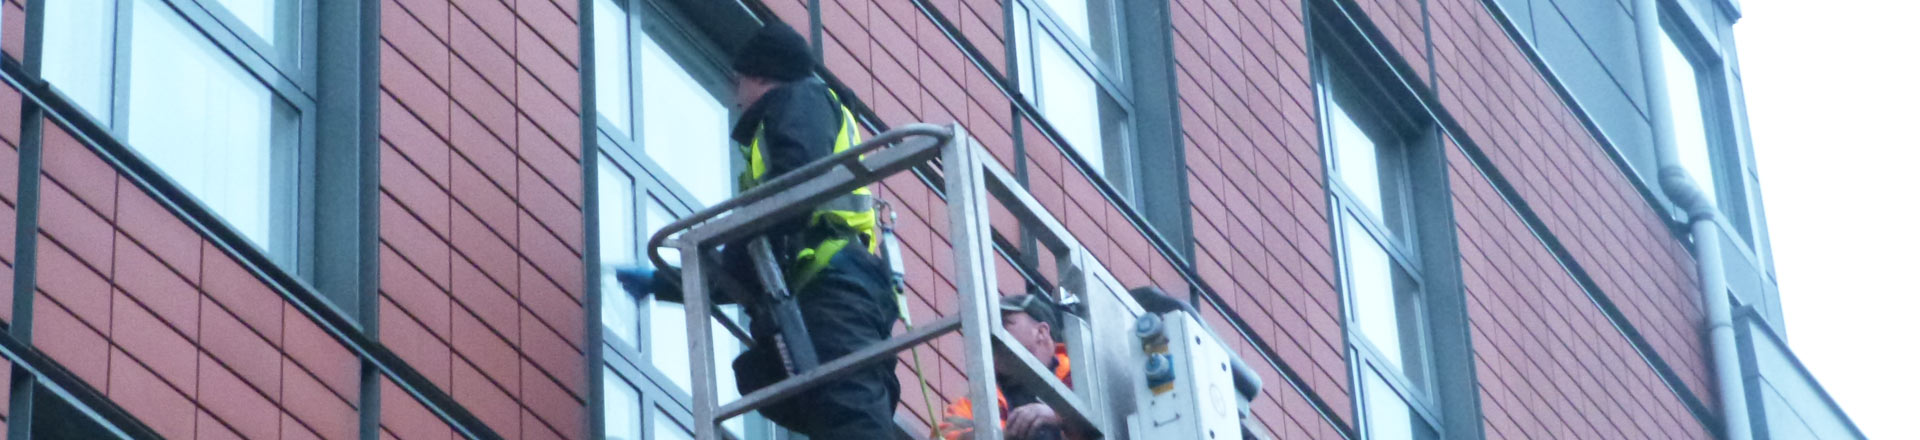 High Level Window Cleaning in Manchester and the Northwest - HCS Cleaning Services